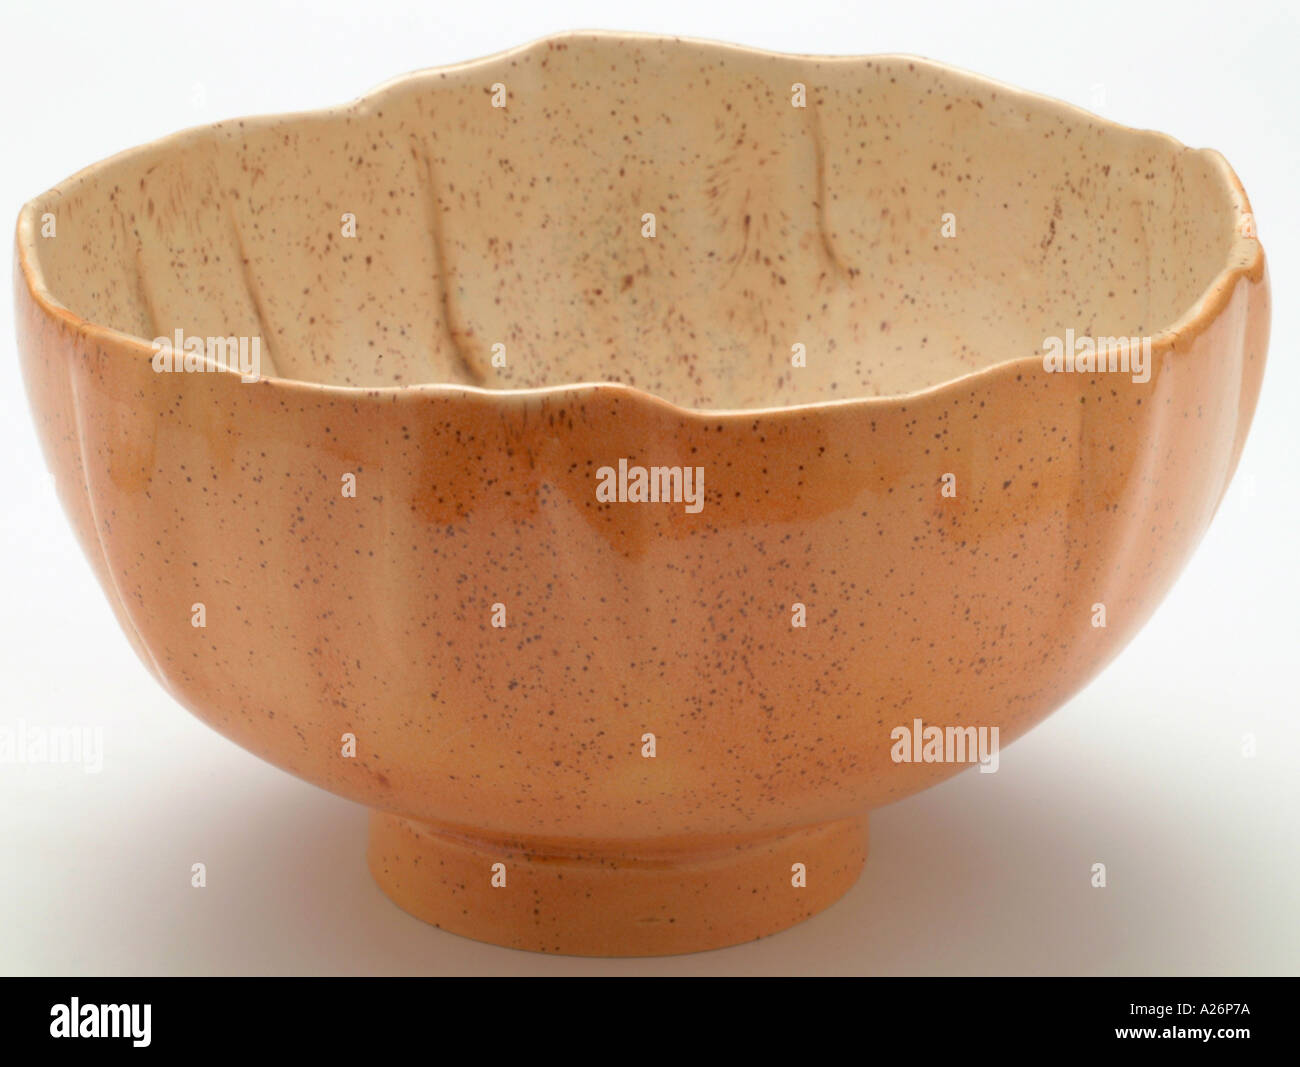 Clay Slab Ceramic High Resolution Stock Photography And Images Alamy